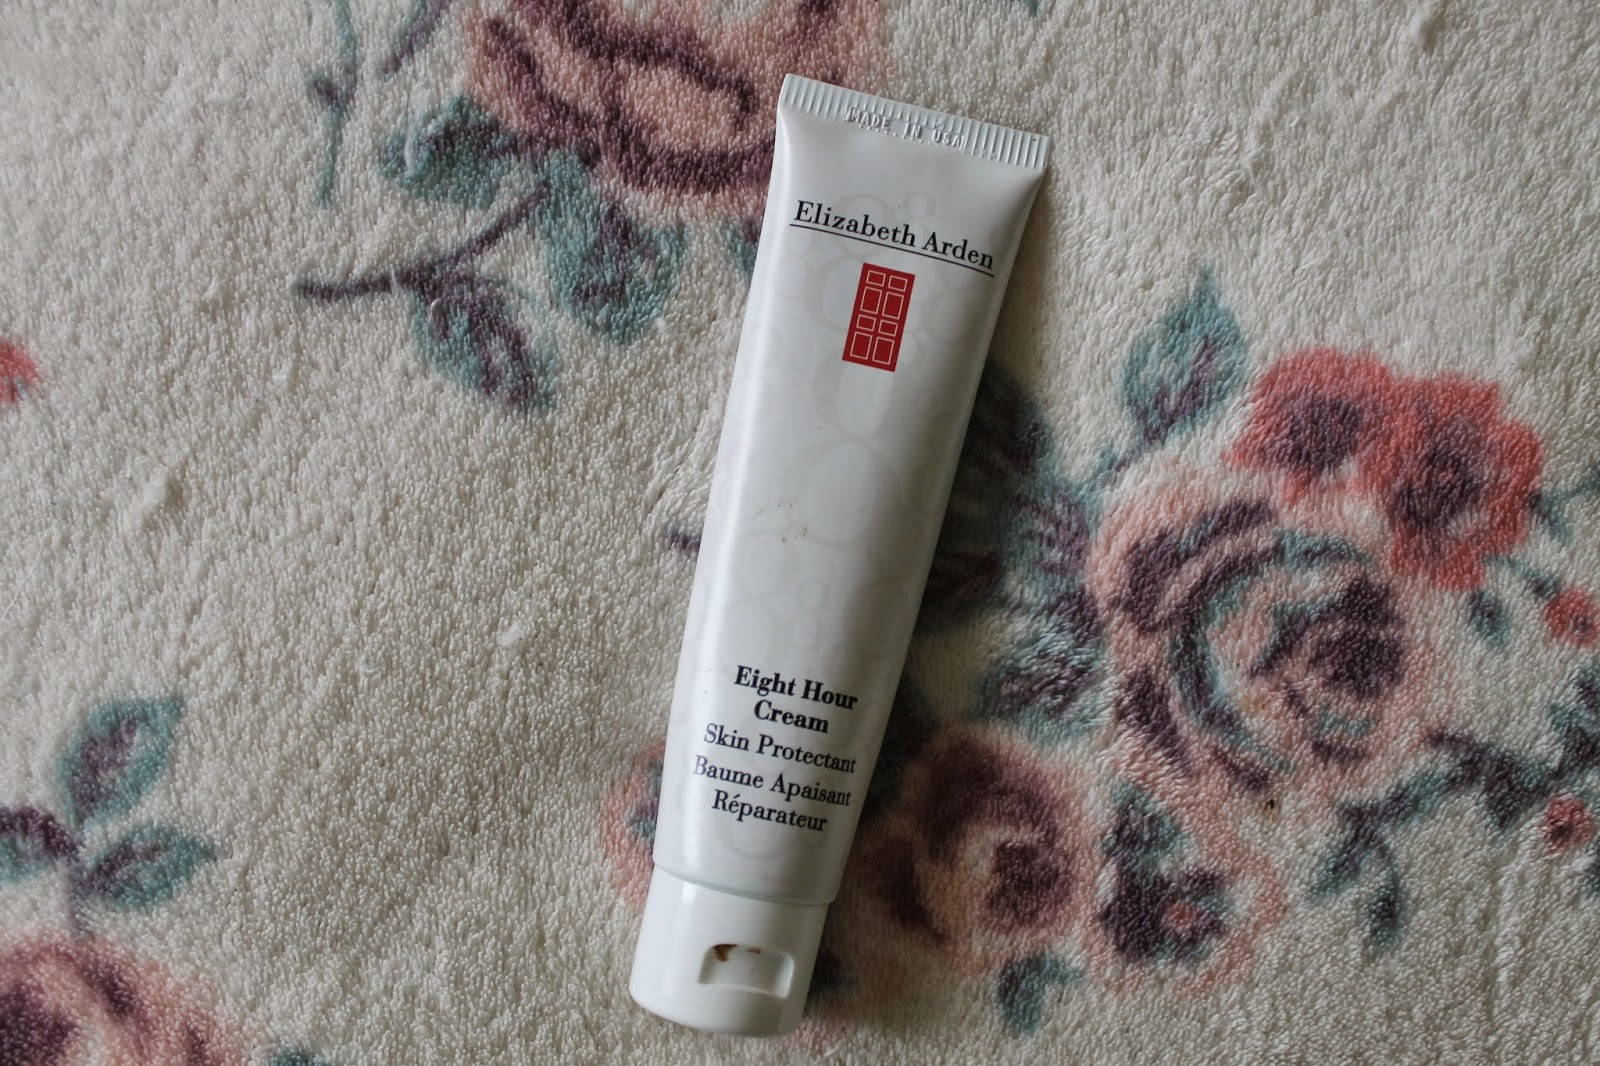 Top 5 Lip Balms Elizabeth Arden 8 Hour Cream